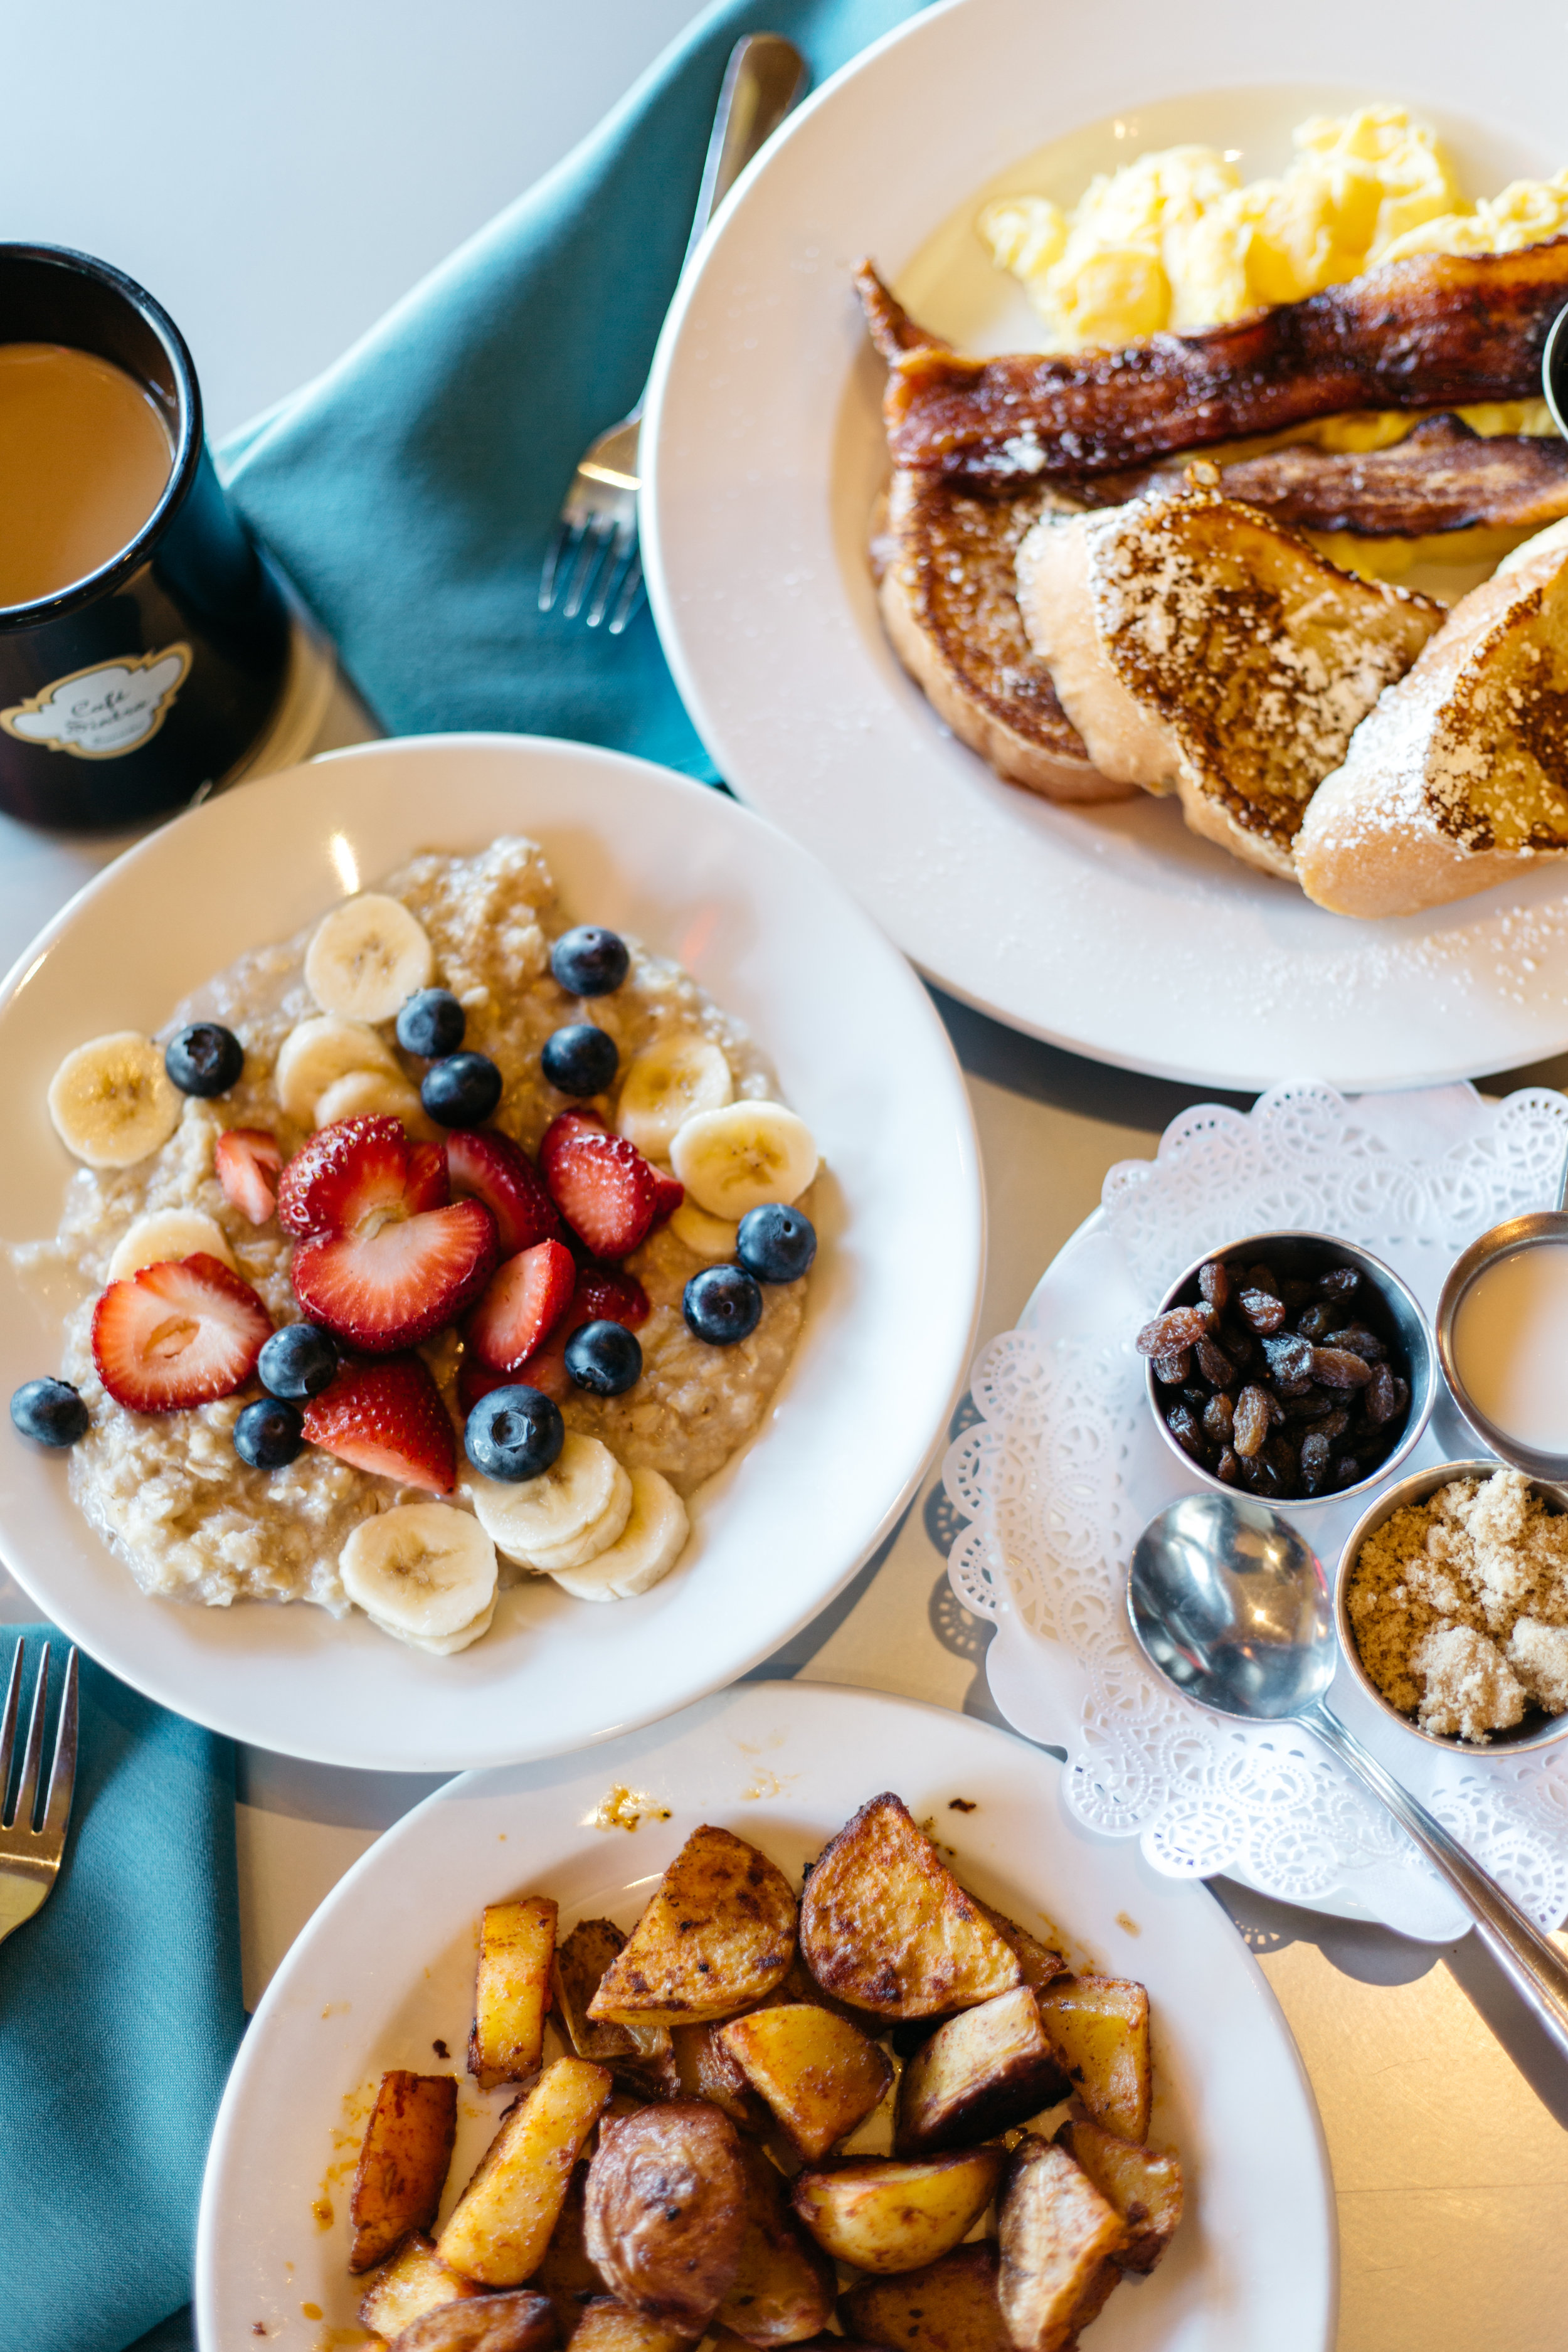 Breakfast is served! Café Sintra is a casual cafe and bistro in Sunriver, Oregon that serves a variety meals from Sintra Potatoes and Oatmeal for breakfast to a Fresh Spinach Salad for lunch.